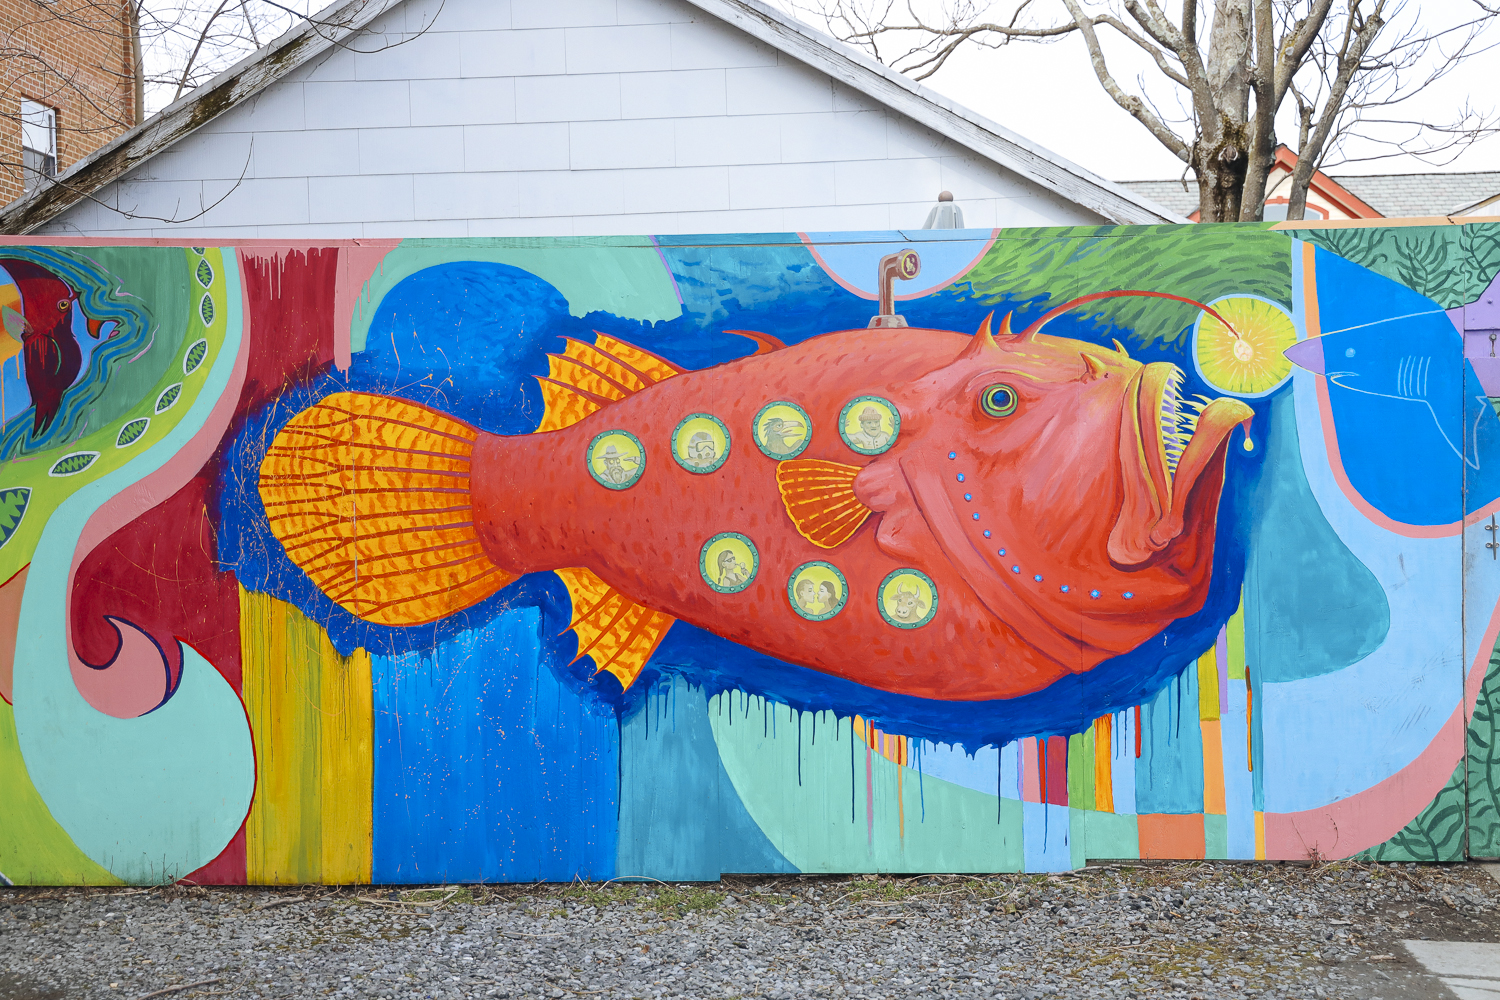 Murals pop up in unexpected places throughout Annapolis.